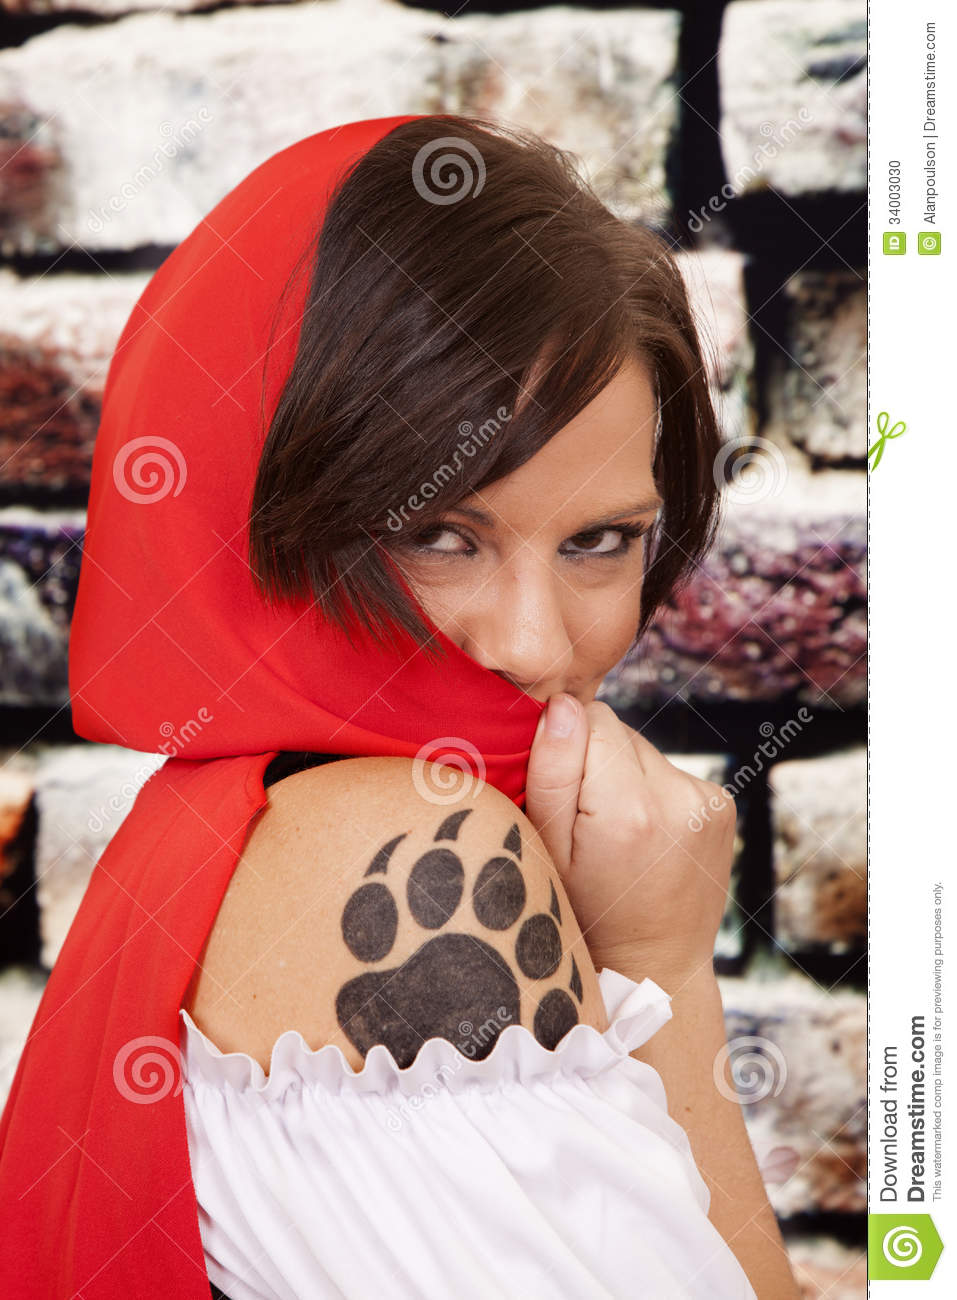 Woman red cape tattoo claw hide face